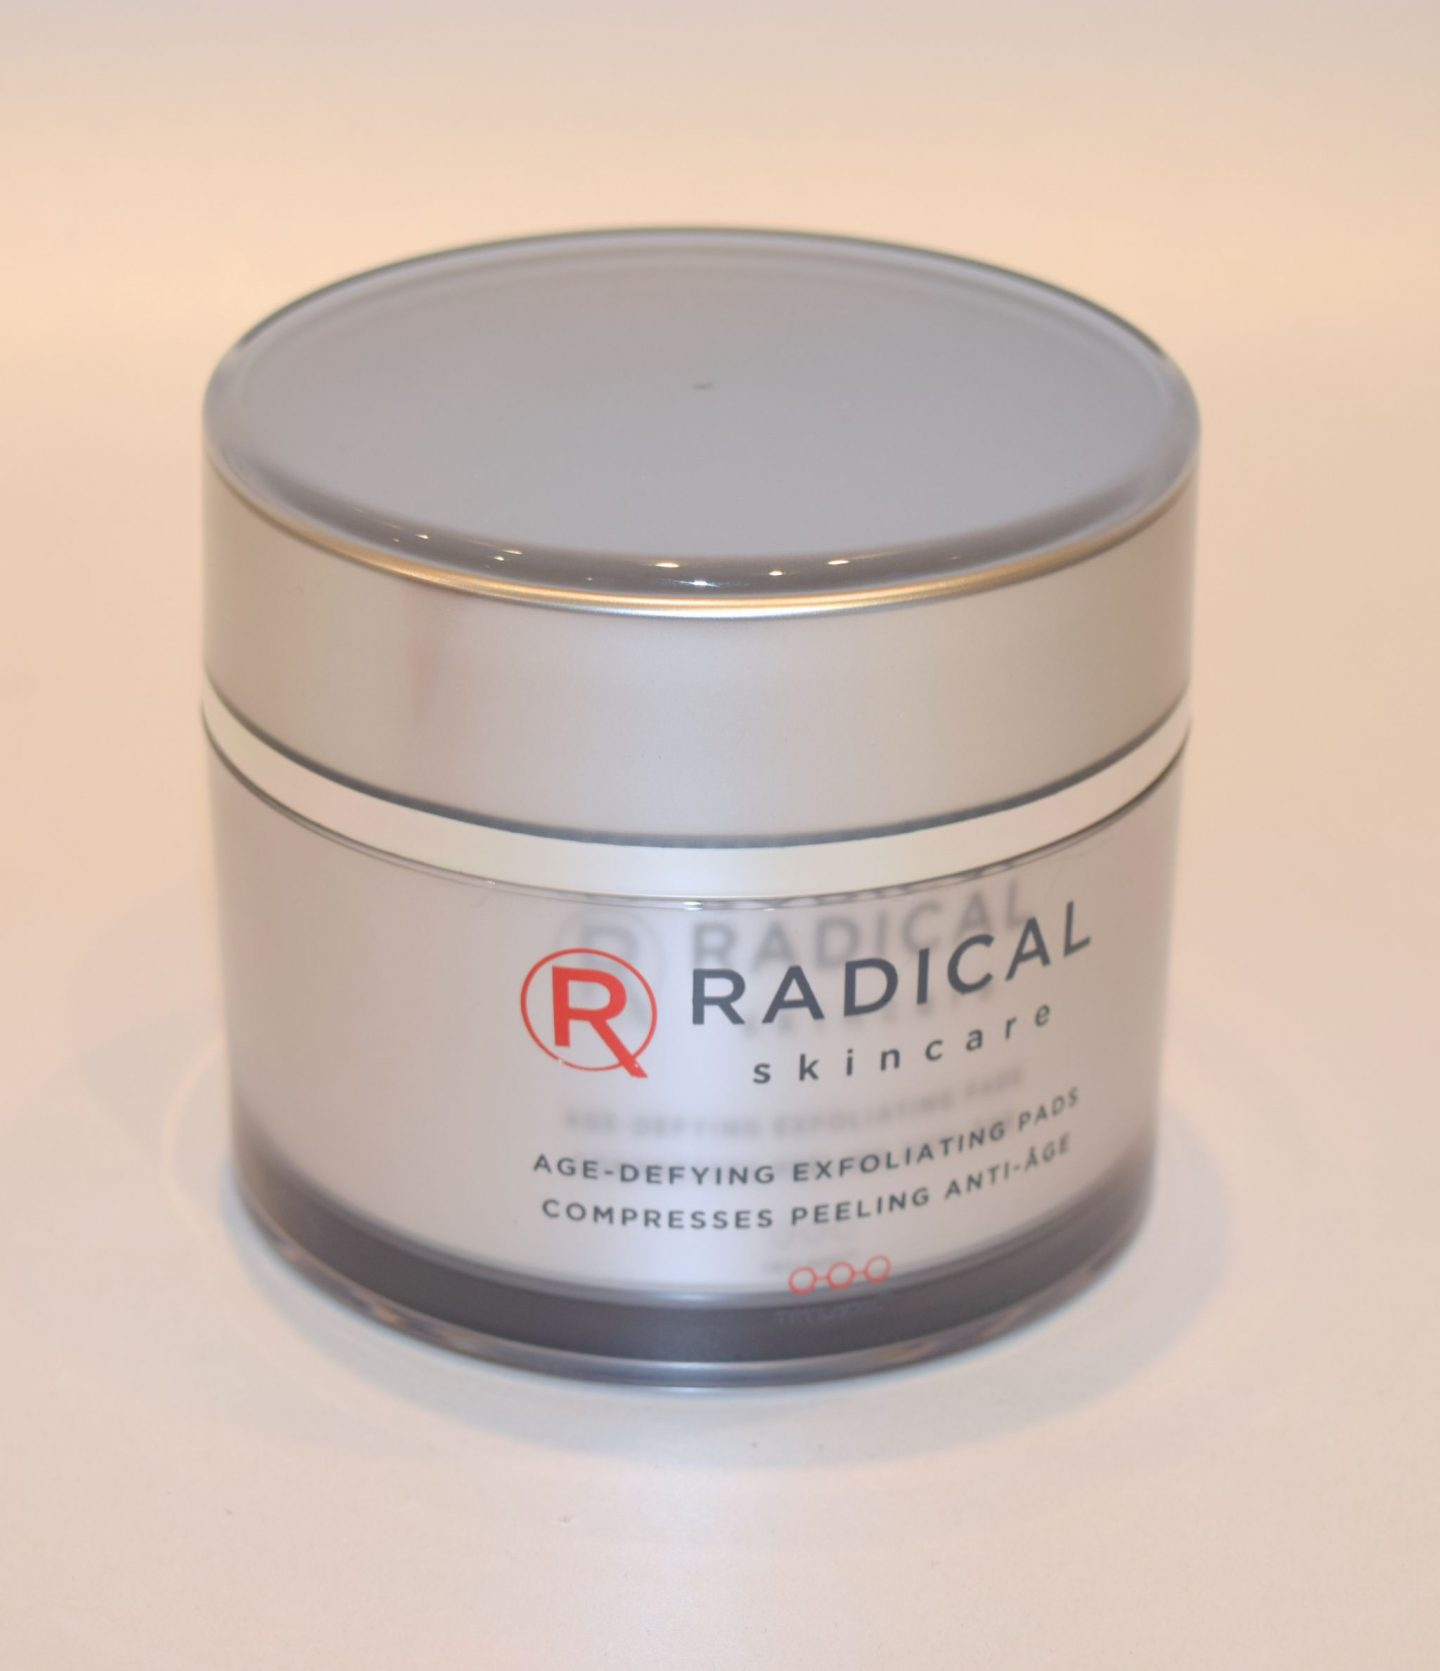 Radical Skin Exfoliating Pads 2